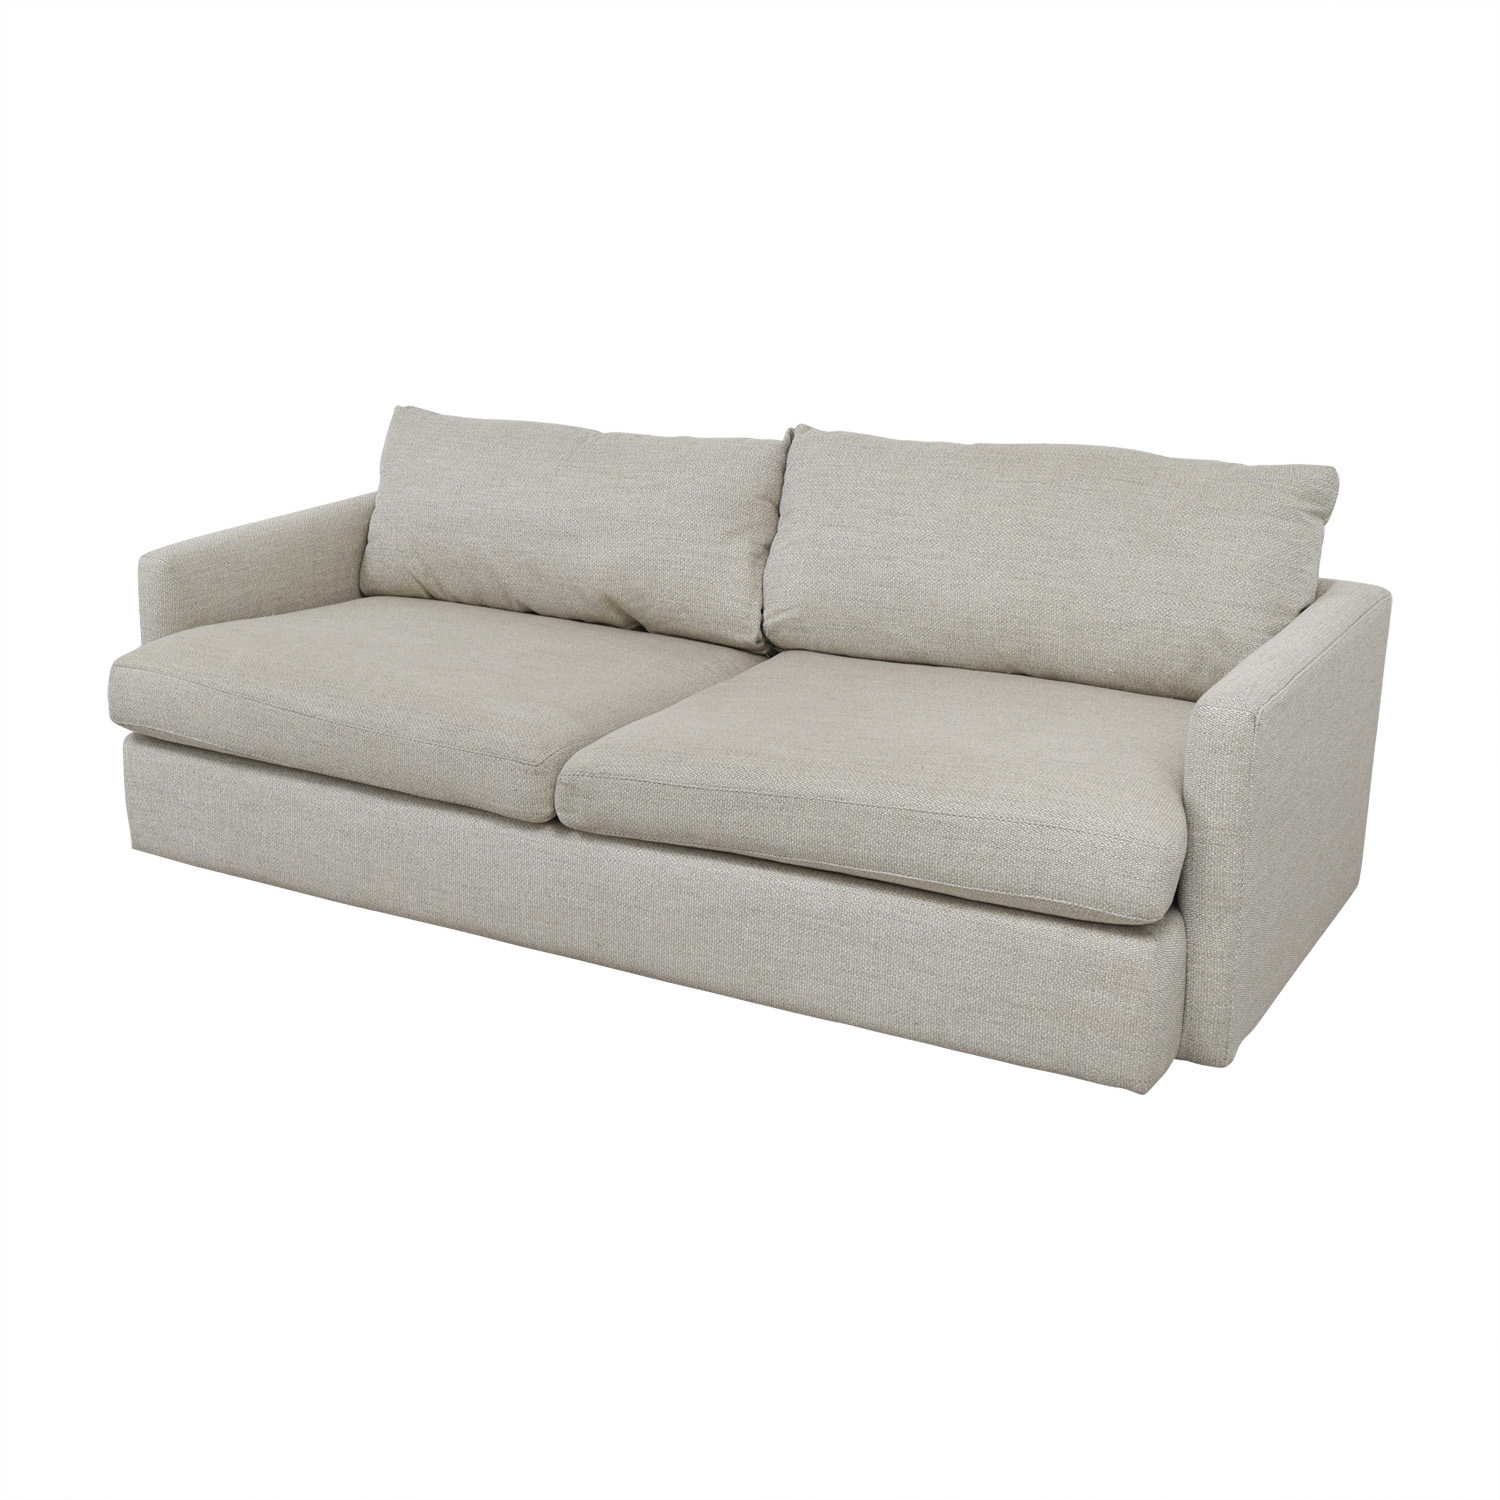 Crate & Barrel Crate & Barrel Lounge II Cement Grey Two Cushion Sofa Classic Sofas